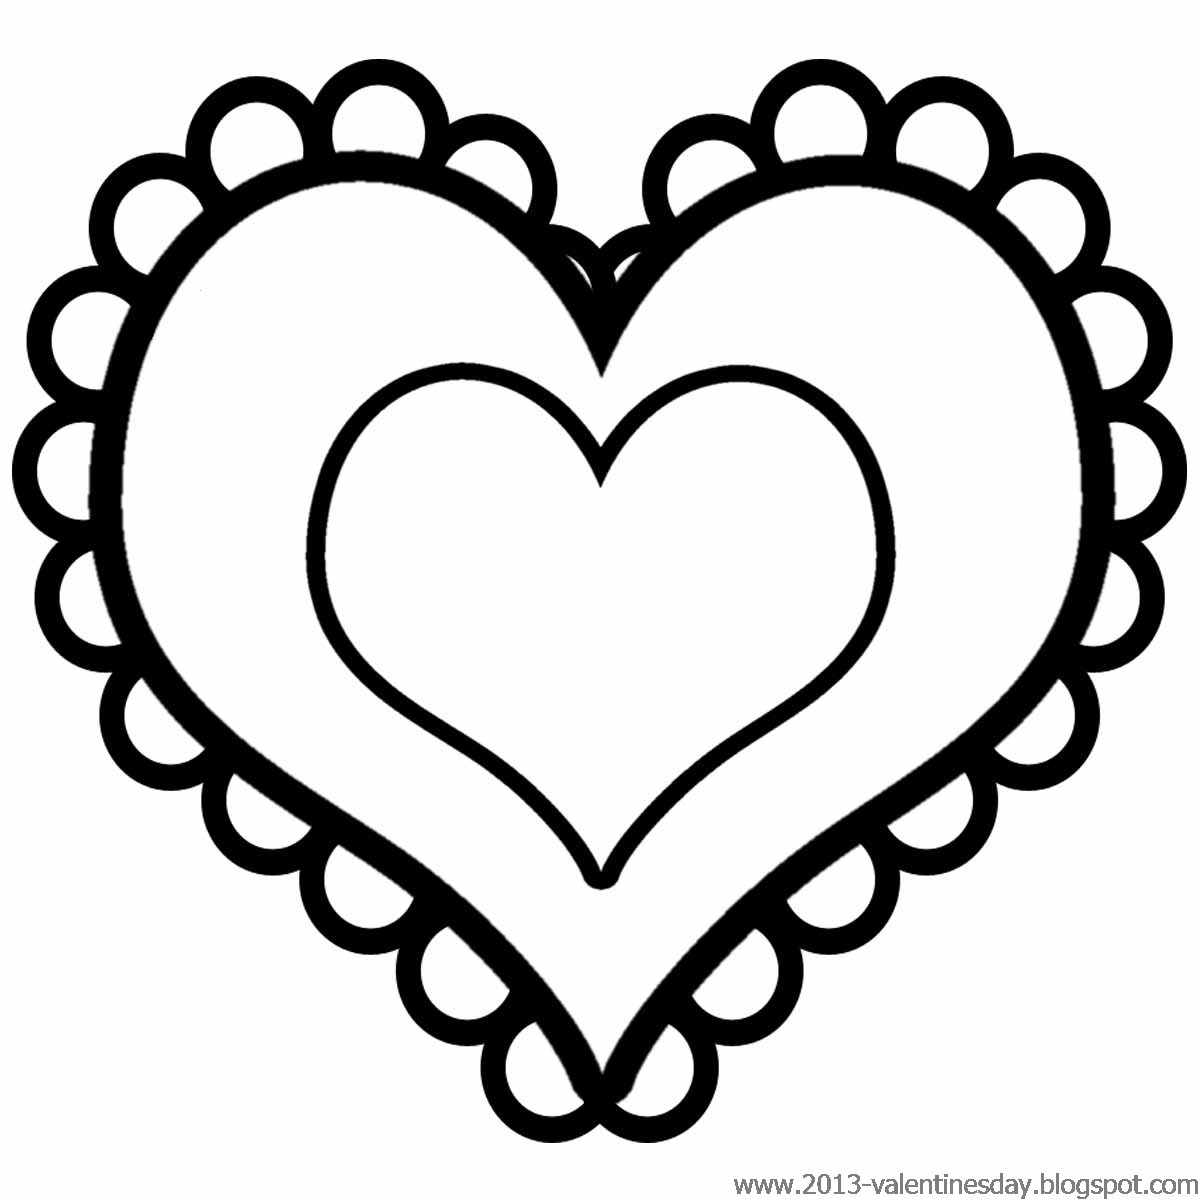 Heart clipart black and white heart black and white clipart